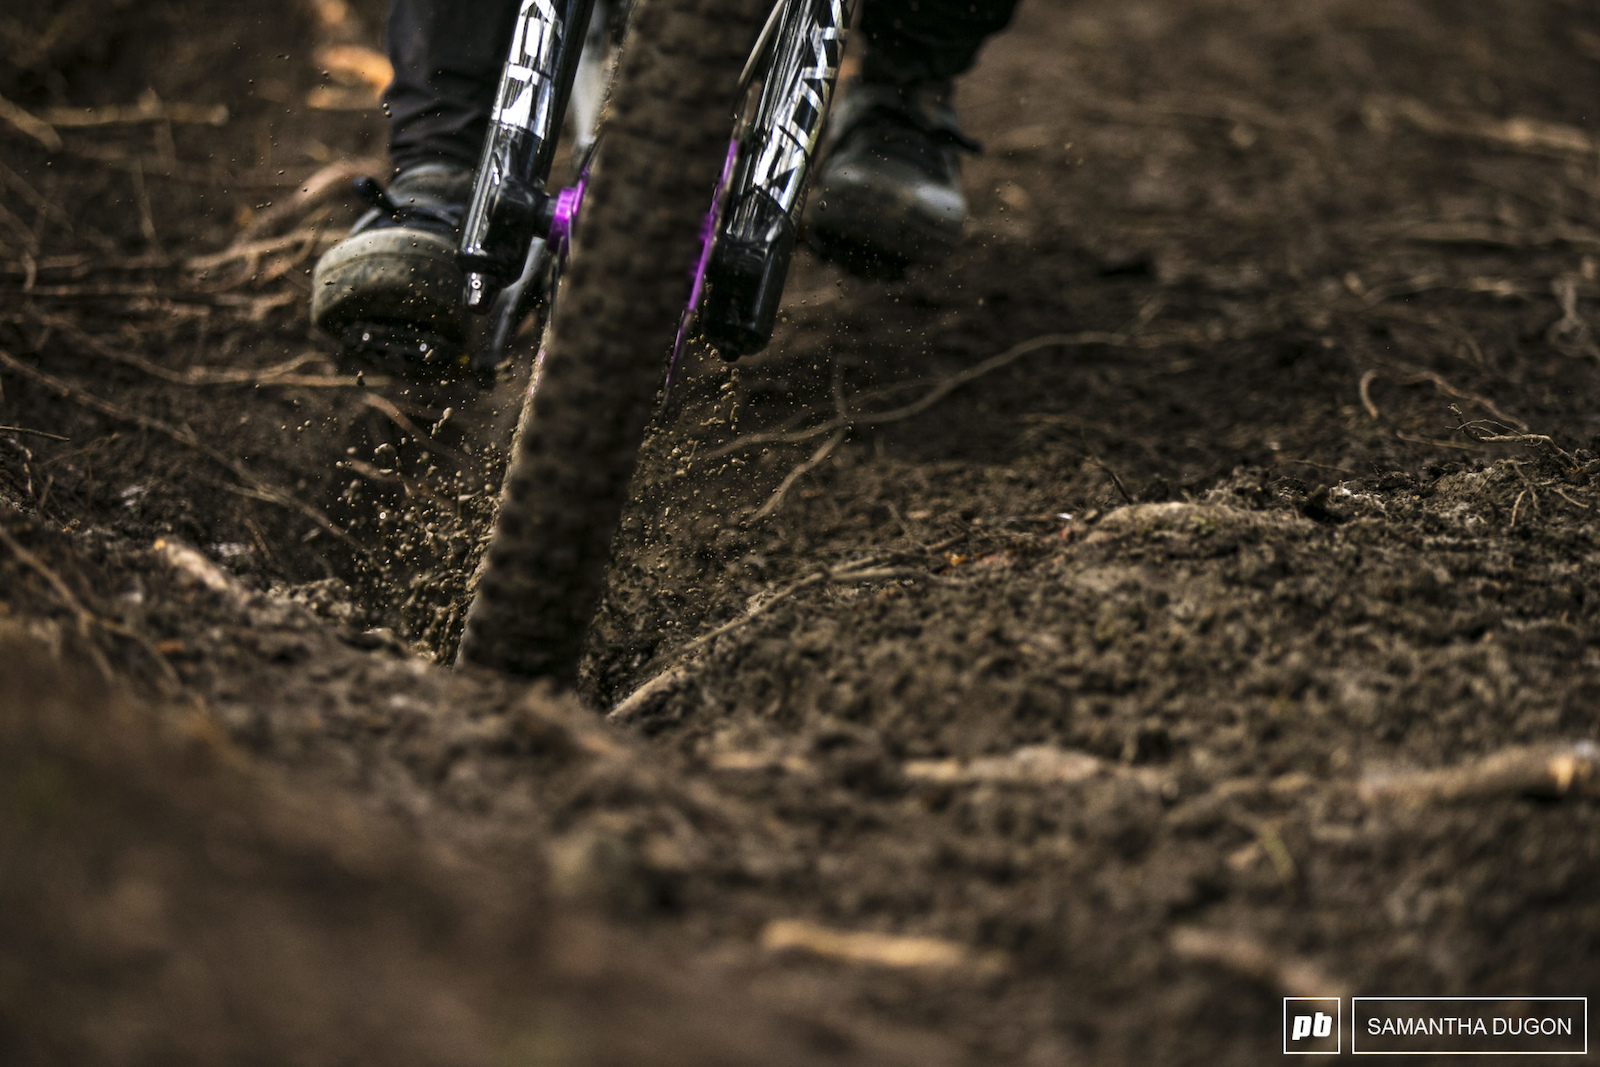 Pockets of slop coated the roots in a slick coating as riders got further down the track.